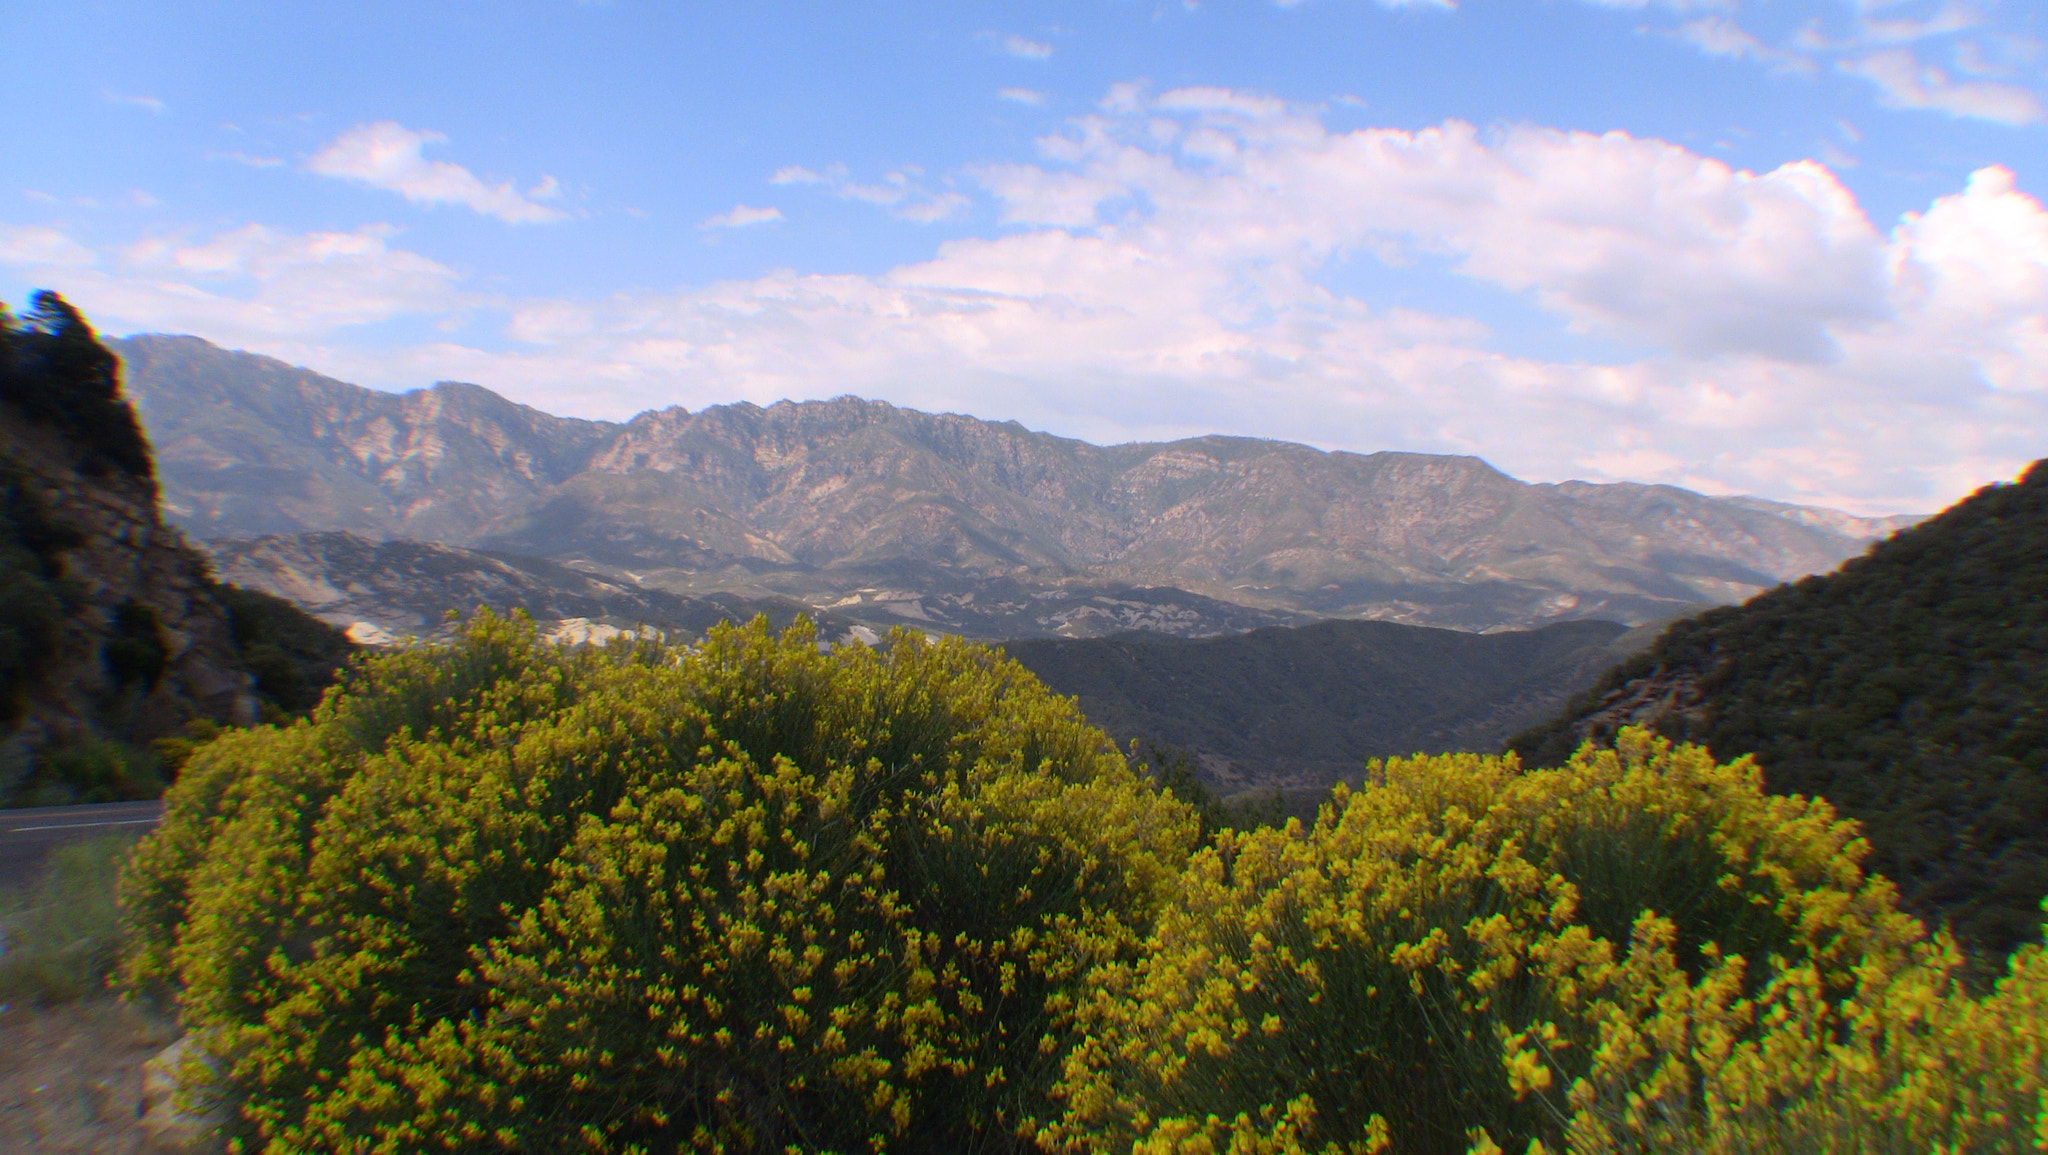 Photograph Ojai Mountains by William Love on 500px